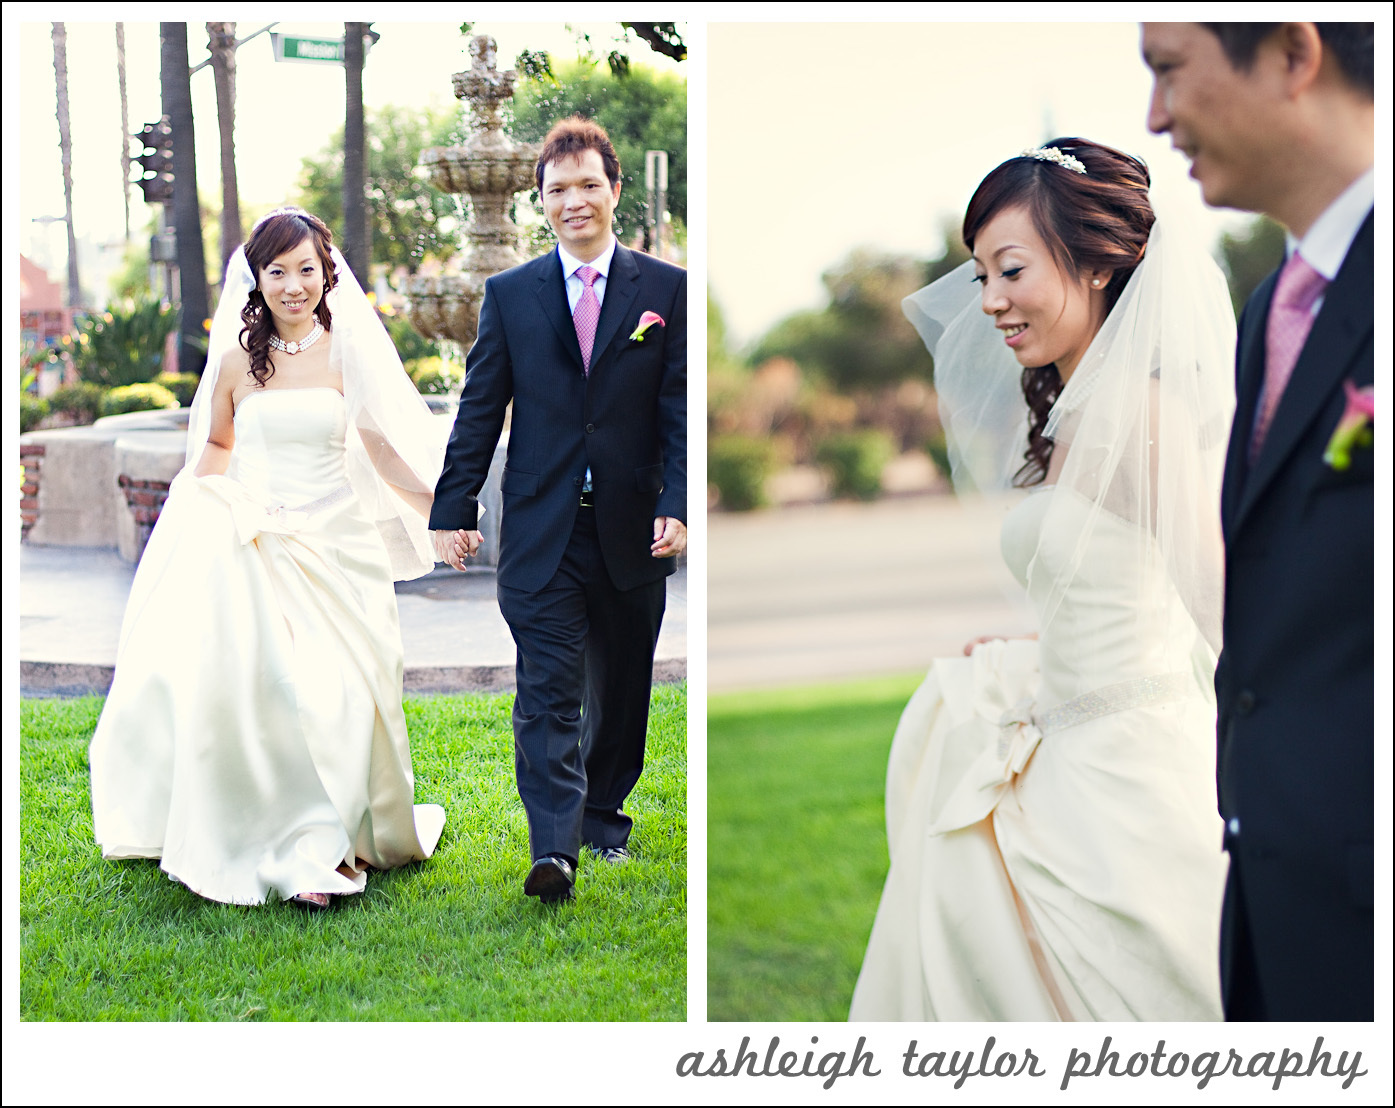 Bride, Groom, San, Mission, Gabriel, Ashleigh taylor photography